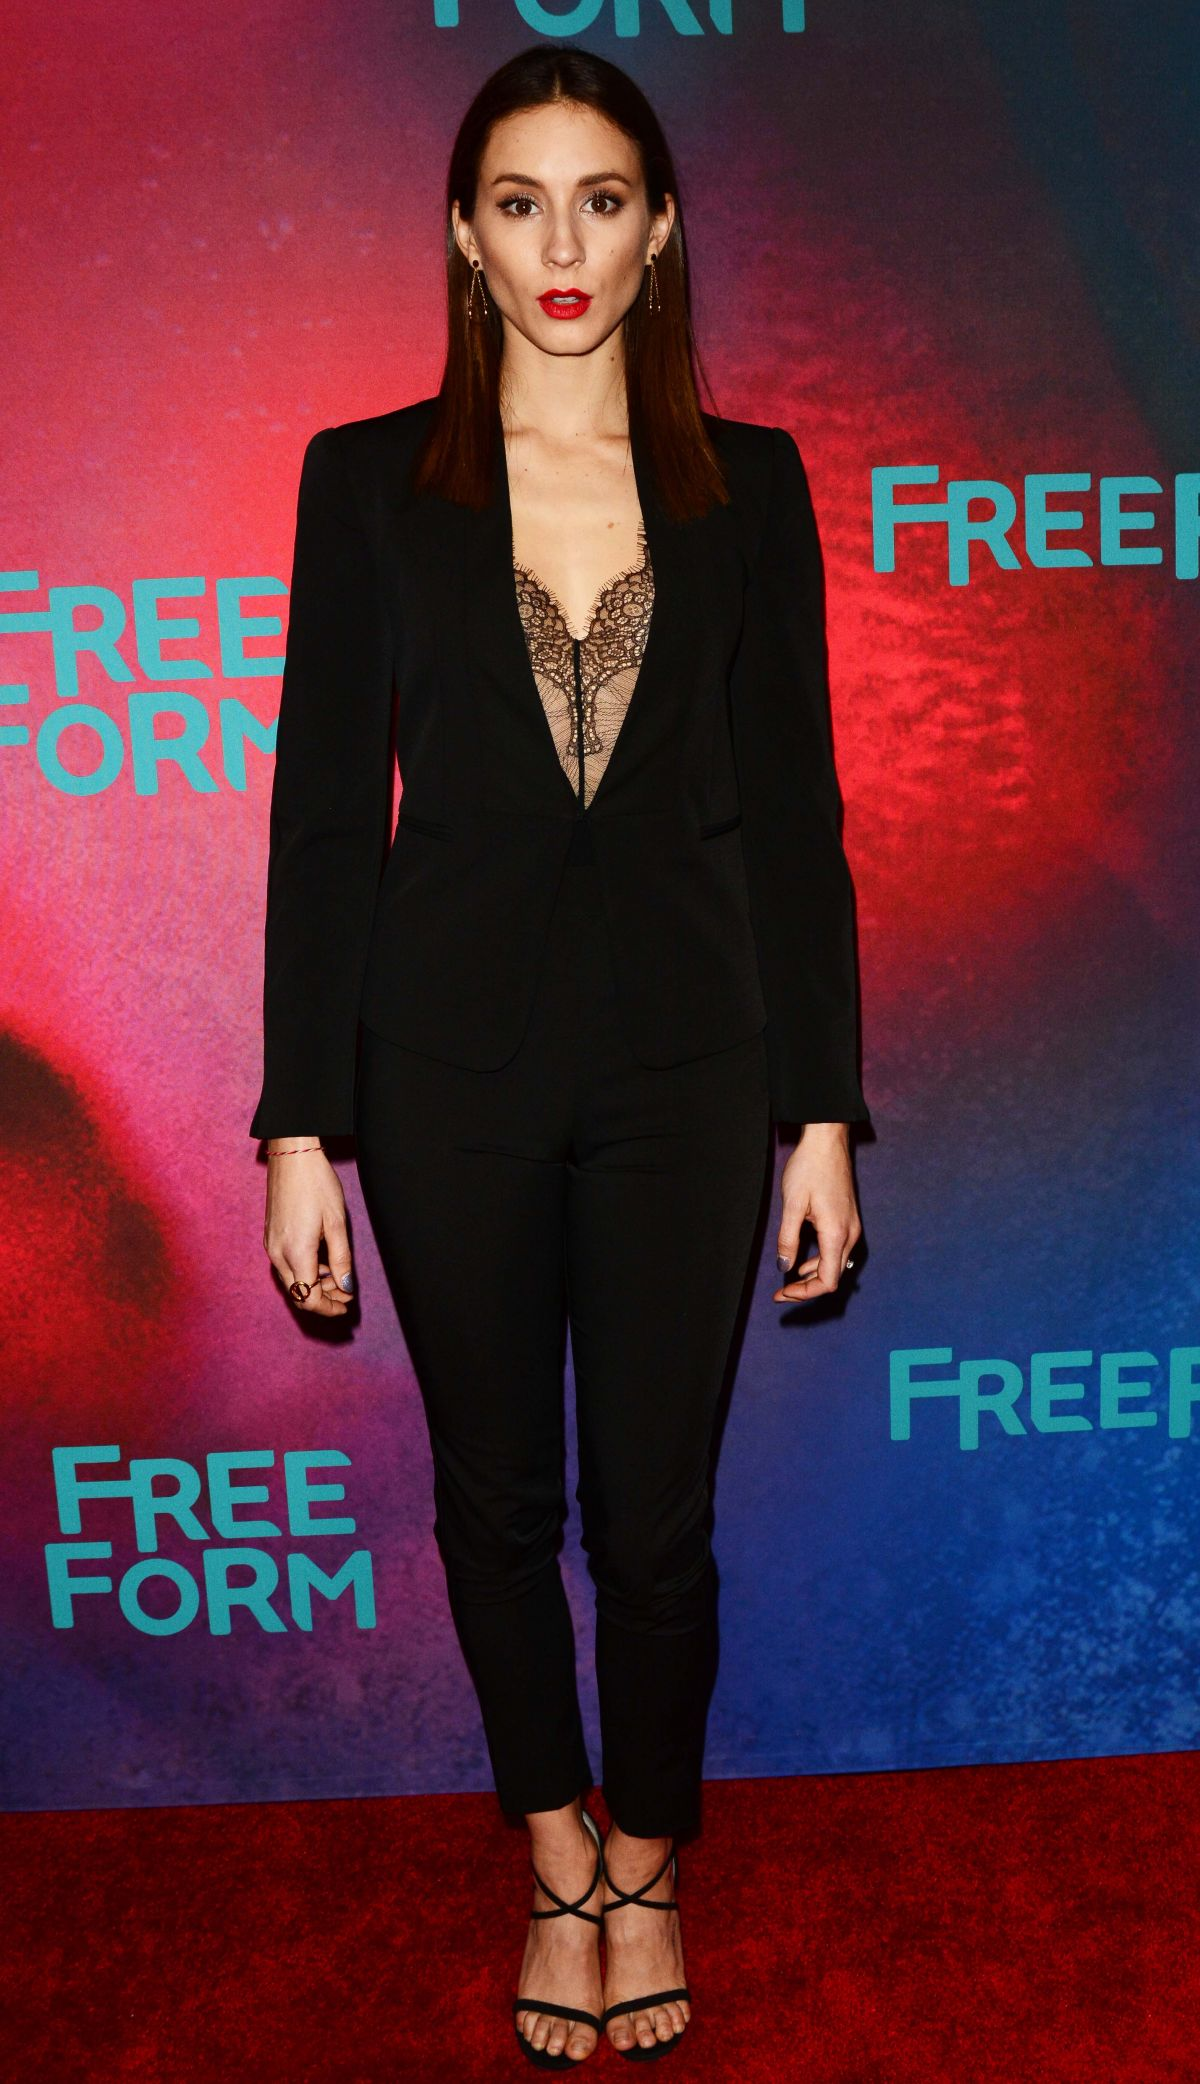 Troian Bellisario At 2017 Freeform Upfront in NYC   troian-bellisario-at-2017-freeform-upfront-in-nyc_11